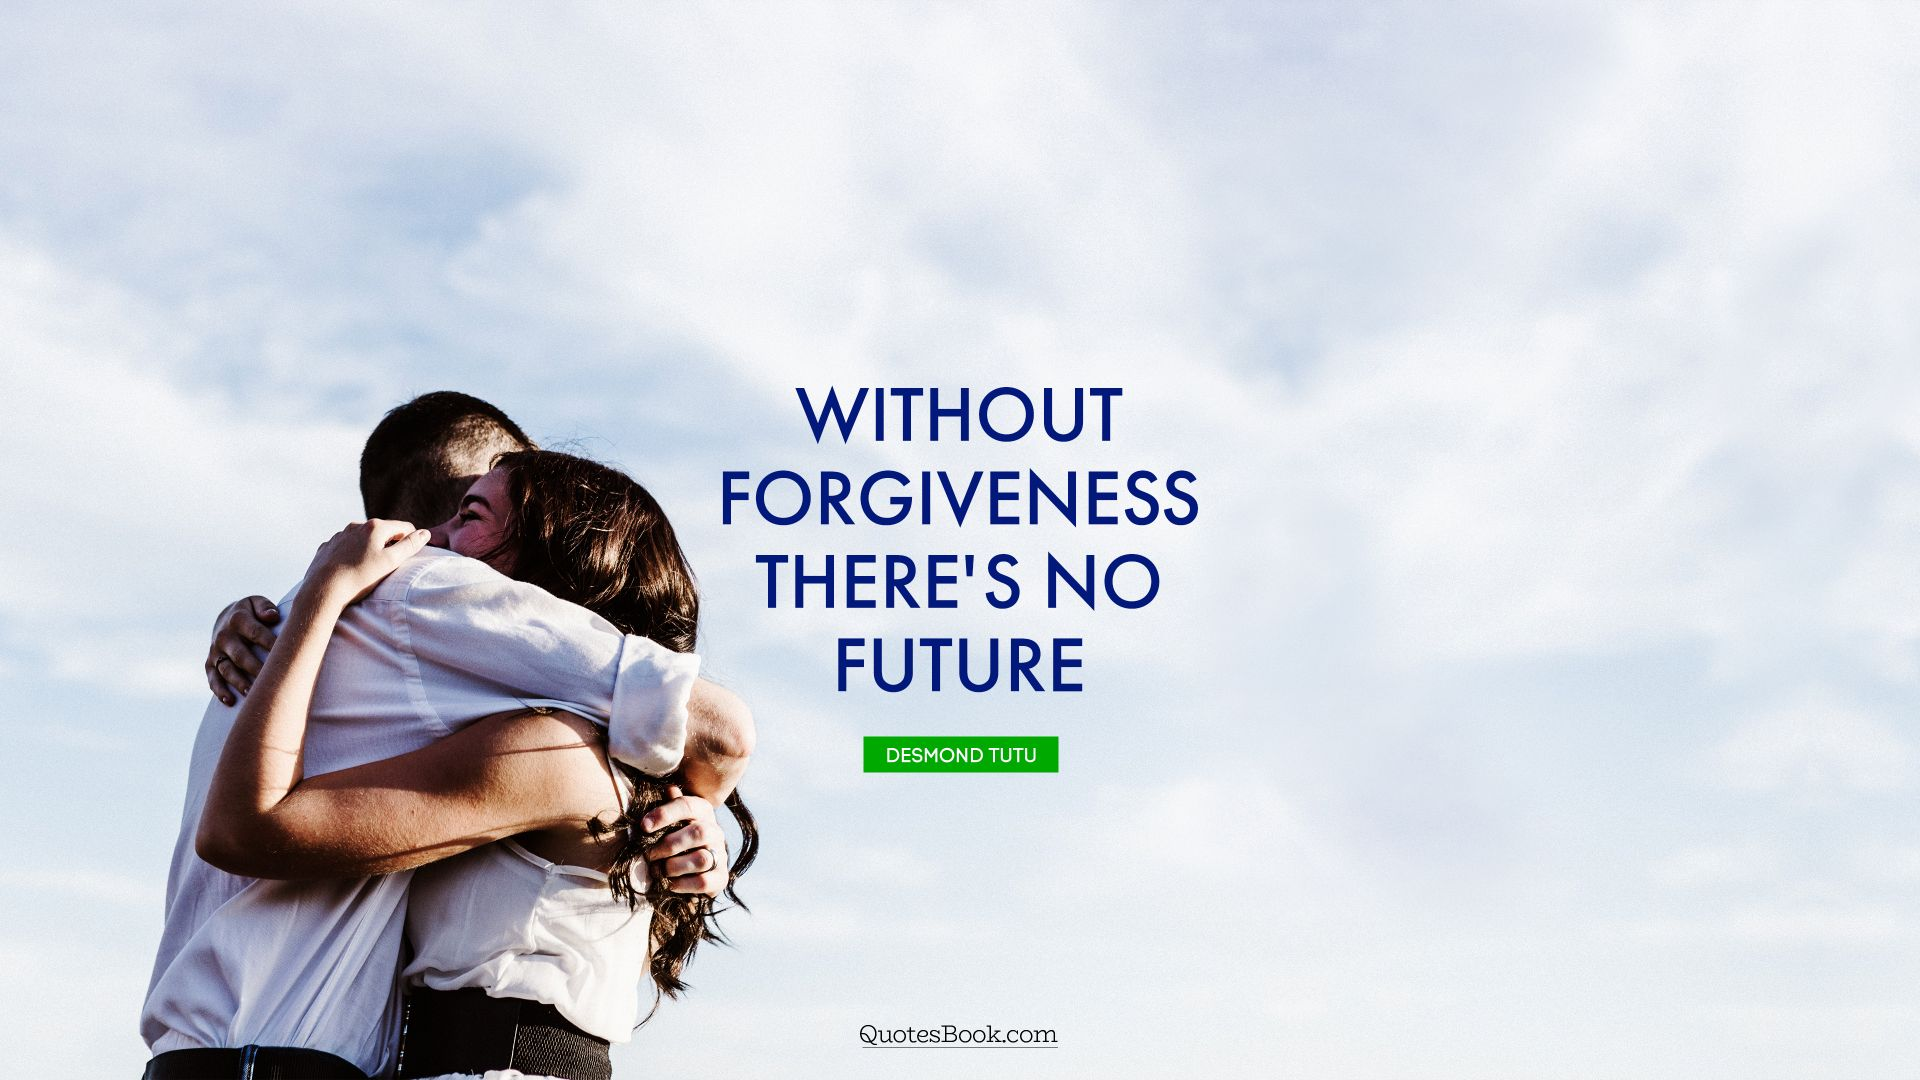 Without forgiveness, there's no future. - Quote by Desmond Tutu